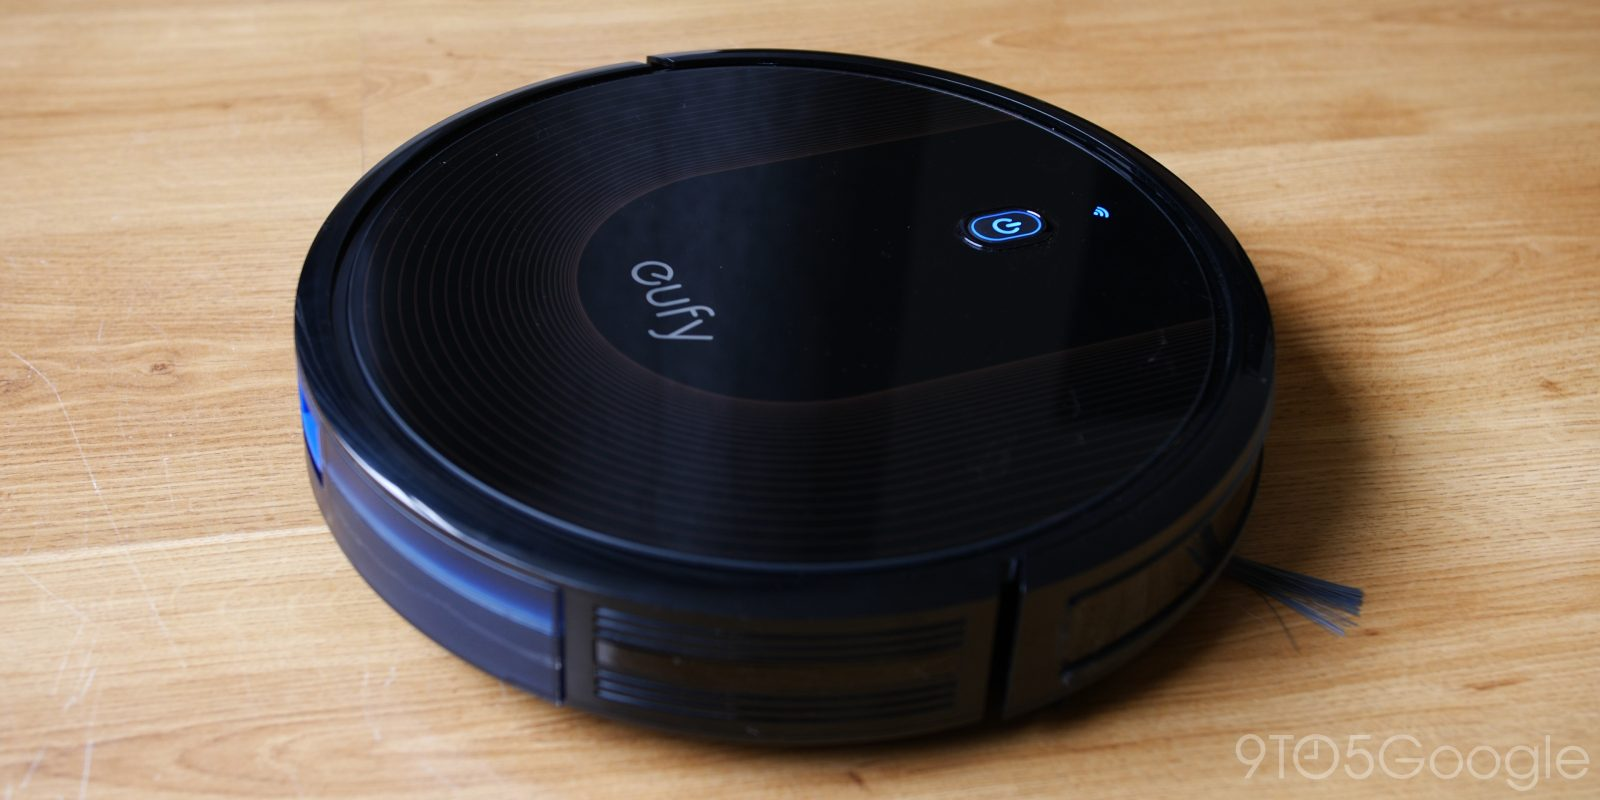 Google Home Essentials: Eufy RoboVac 30C [Video] - 9to5Google